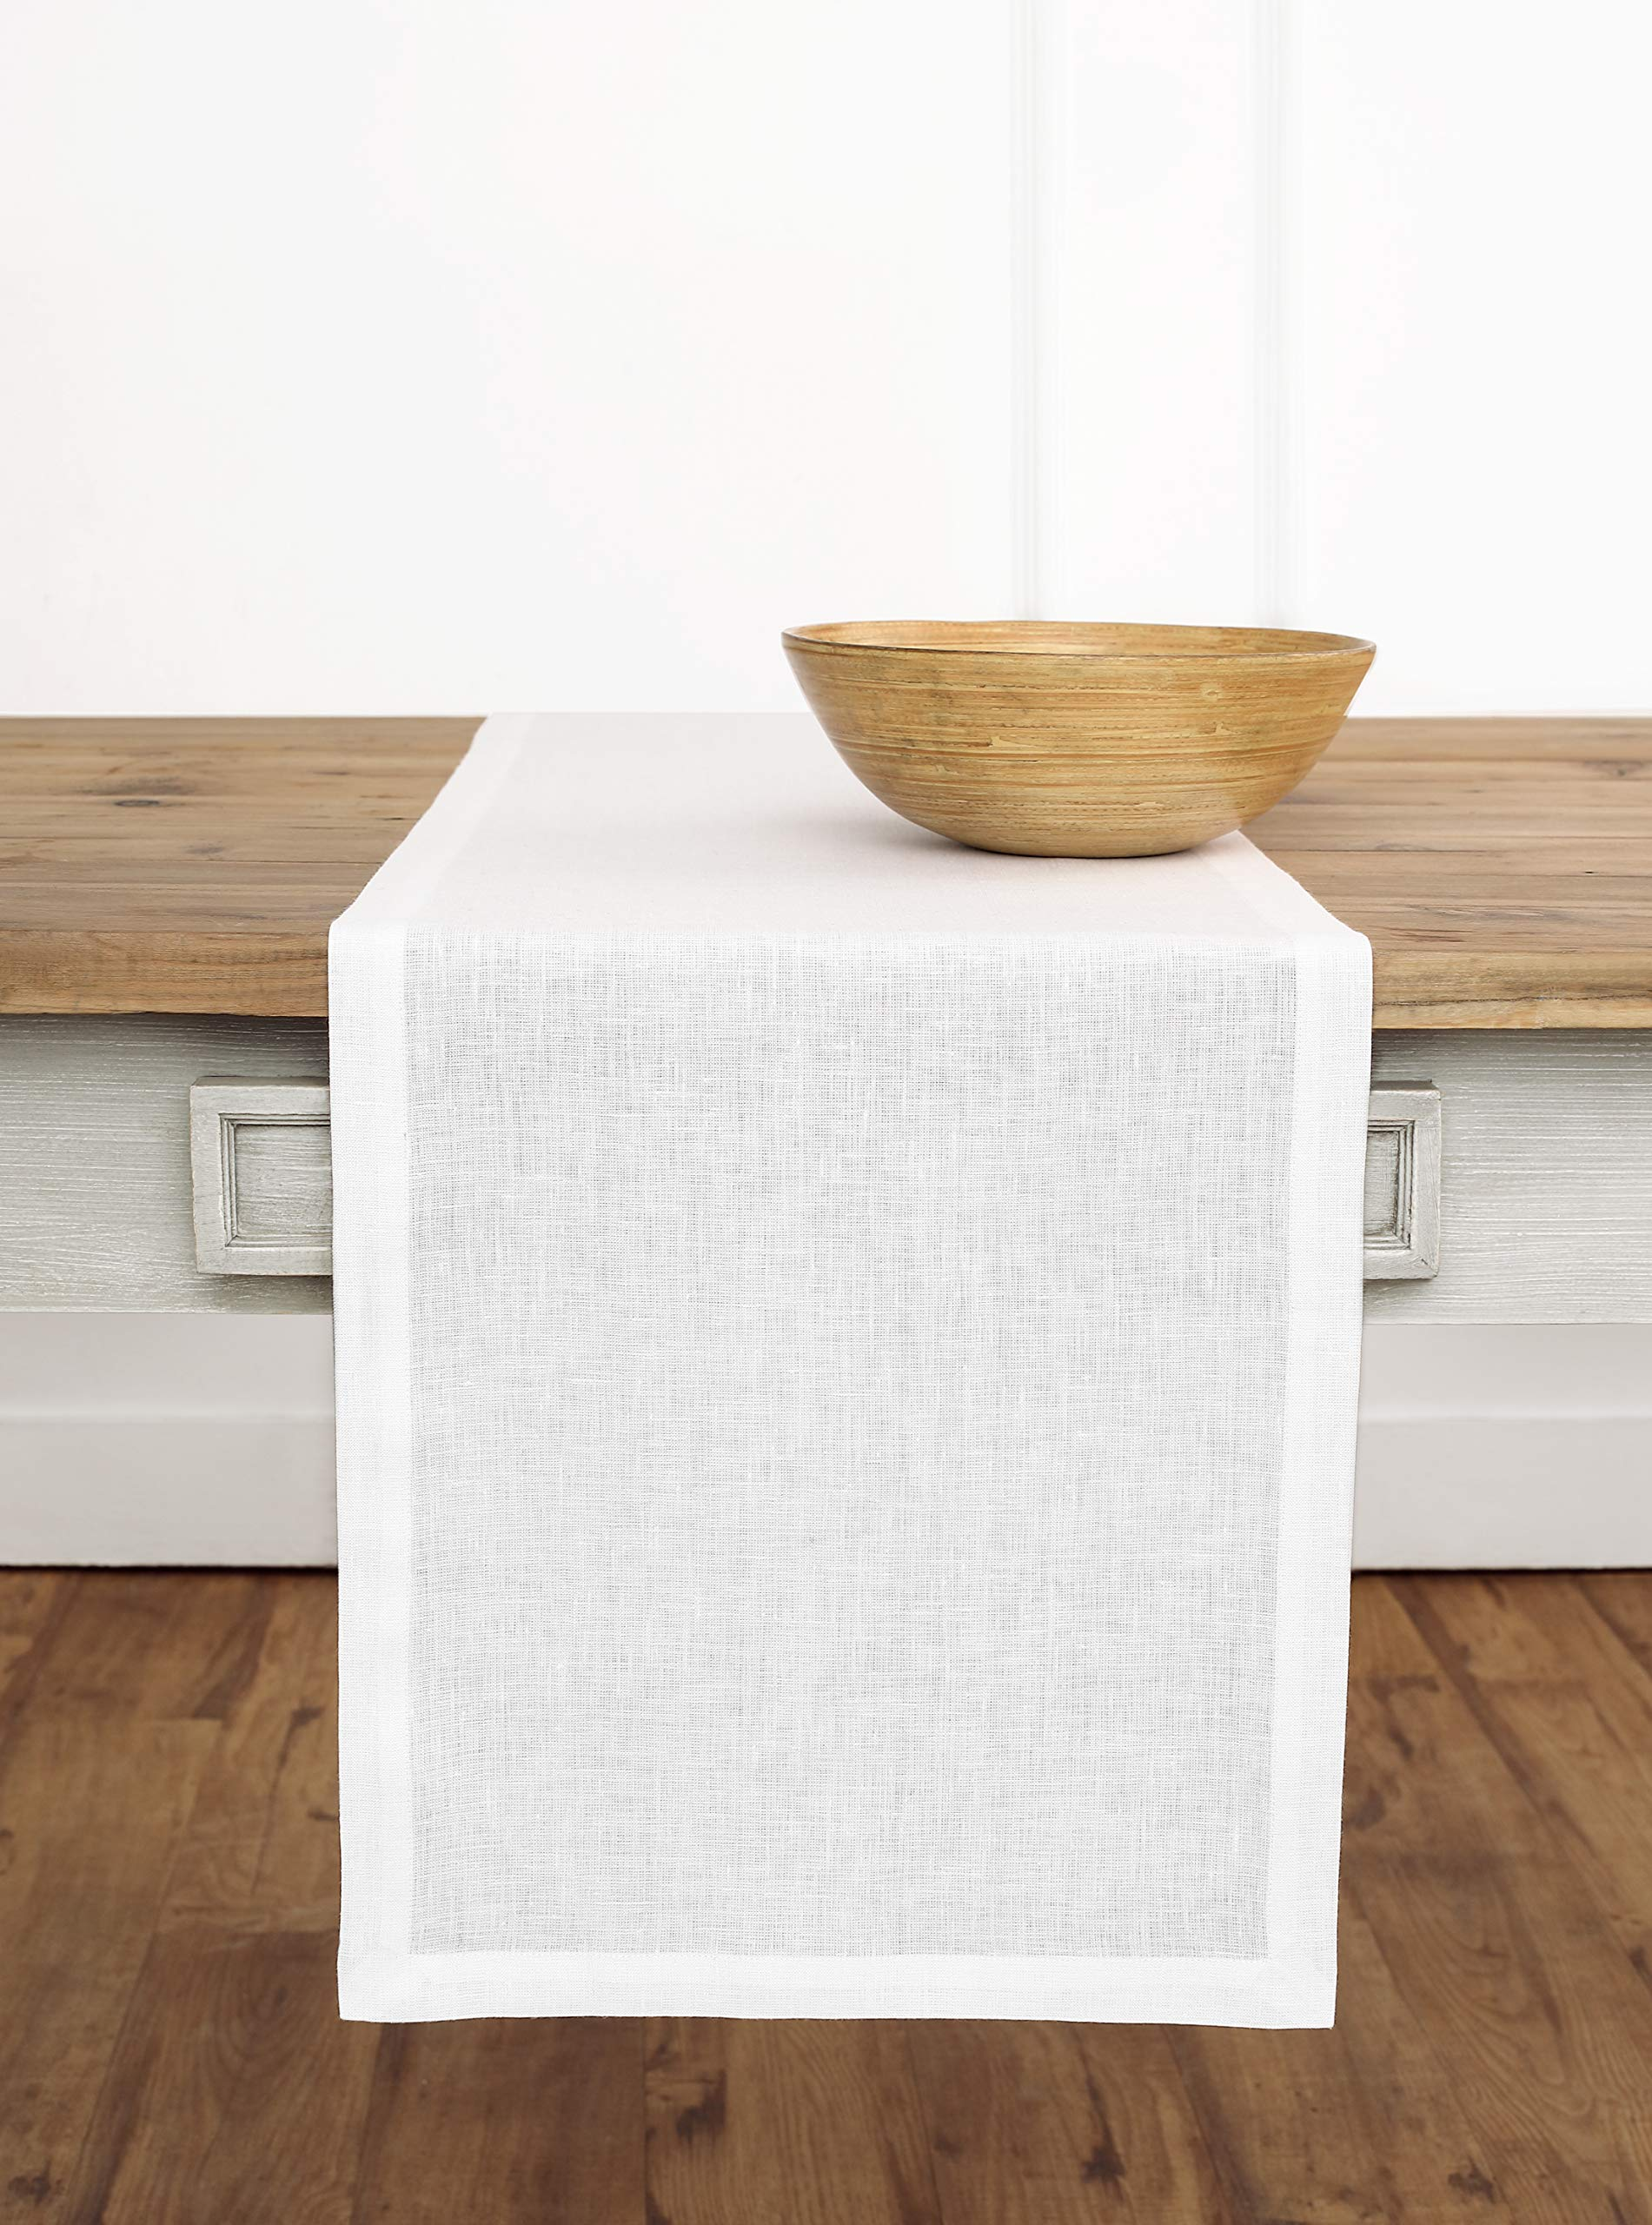 Solino Home Linen Table Runner - 14 x 72 inch, Crafted from 100% Pure European Flax - White, Athena